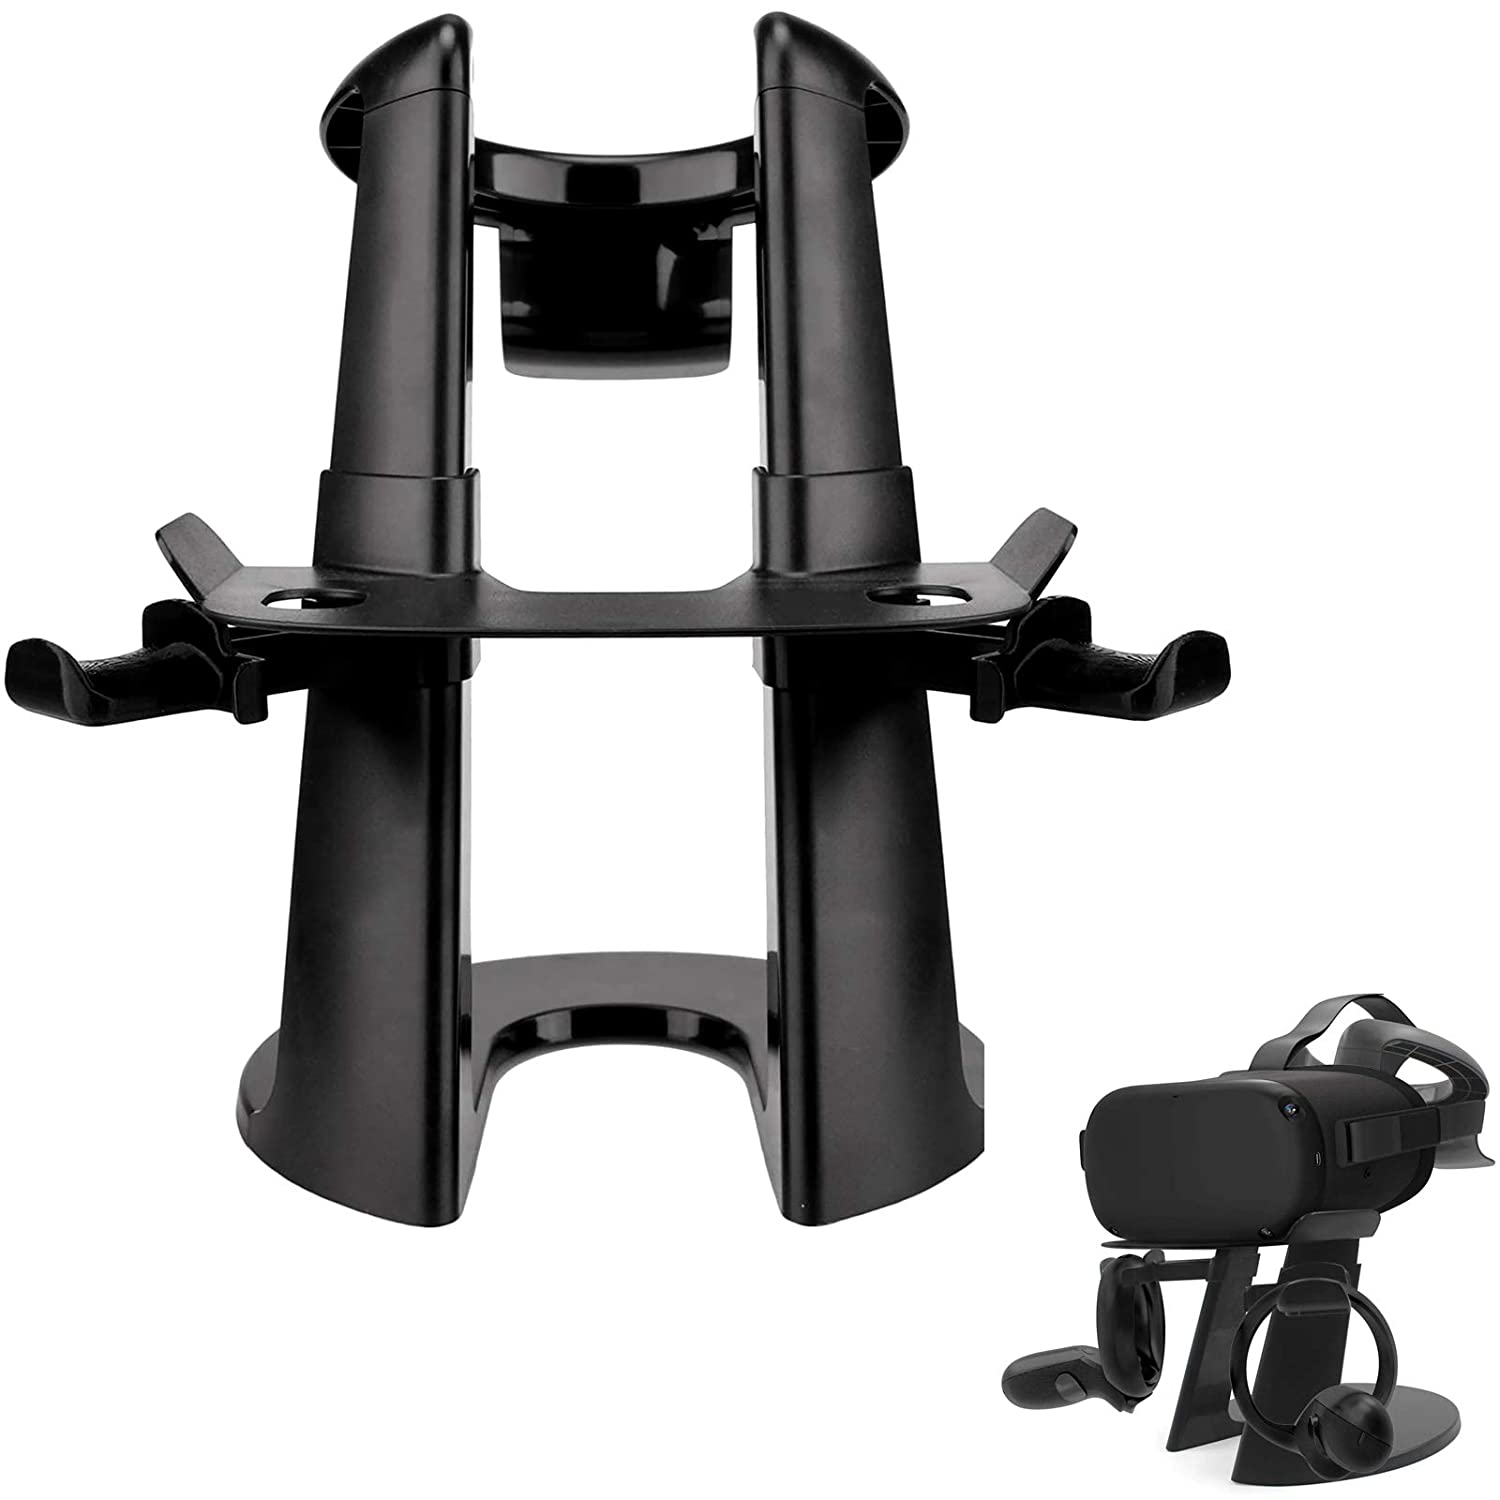 LICHIFIT AMVR VR Stand Headset Display Holder Controller Mount Station for Oculus Rift S / Oculus Quest Virtual Reality Headset and Touch Controllers Organizer